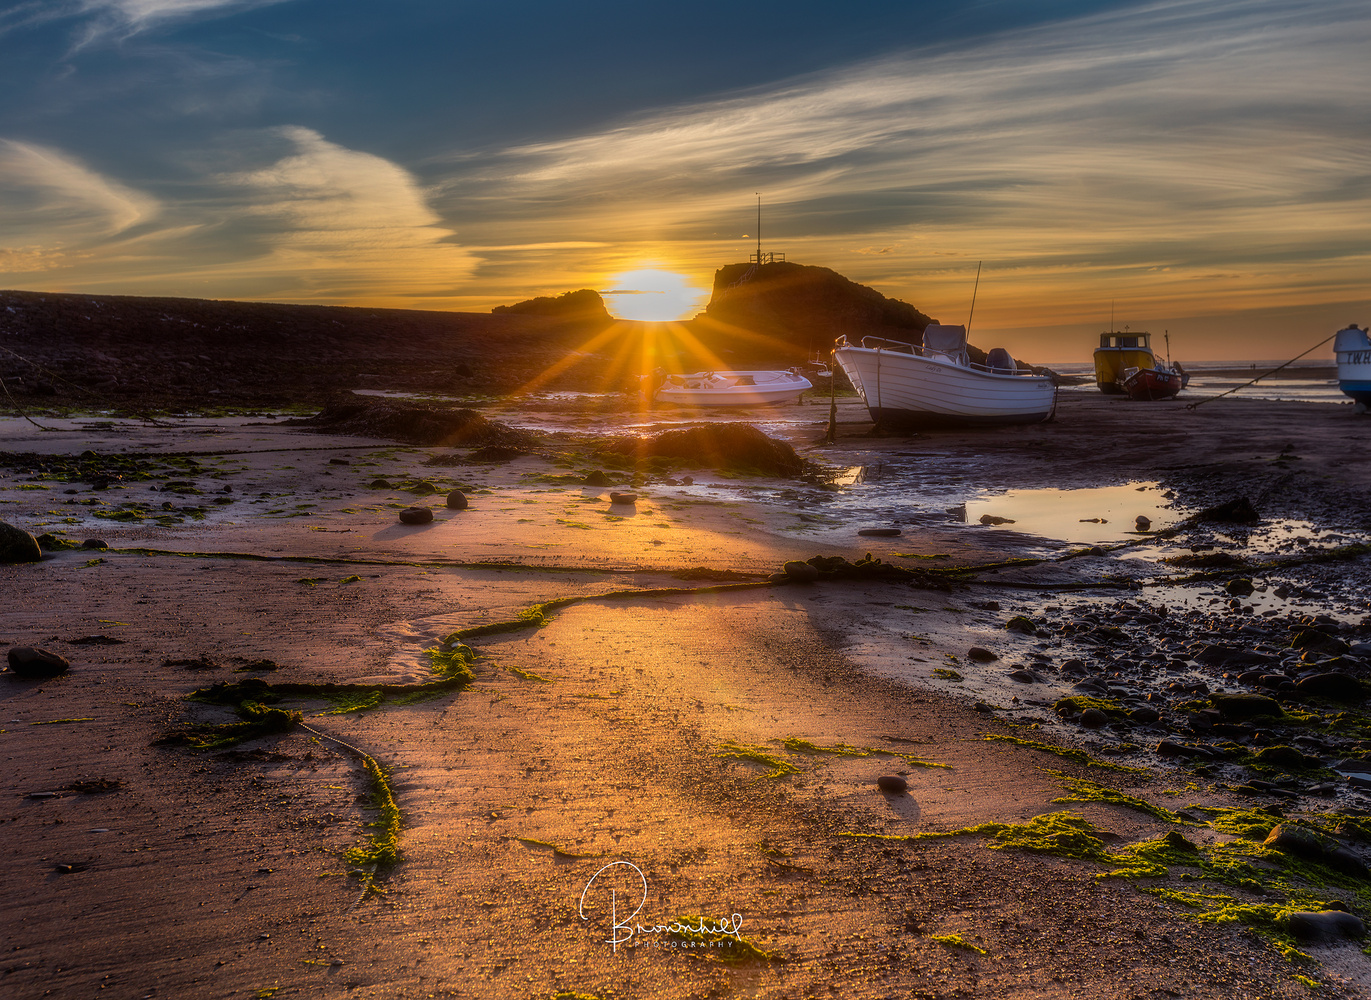 Golden hour @ the harbour by stephen brownhill